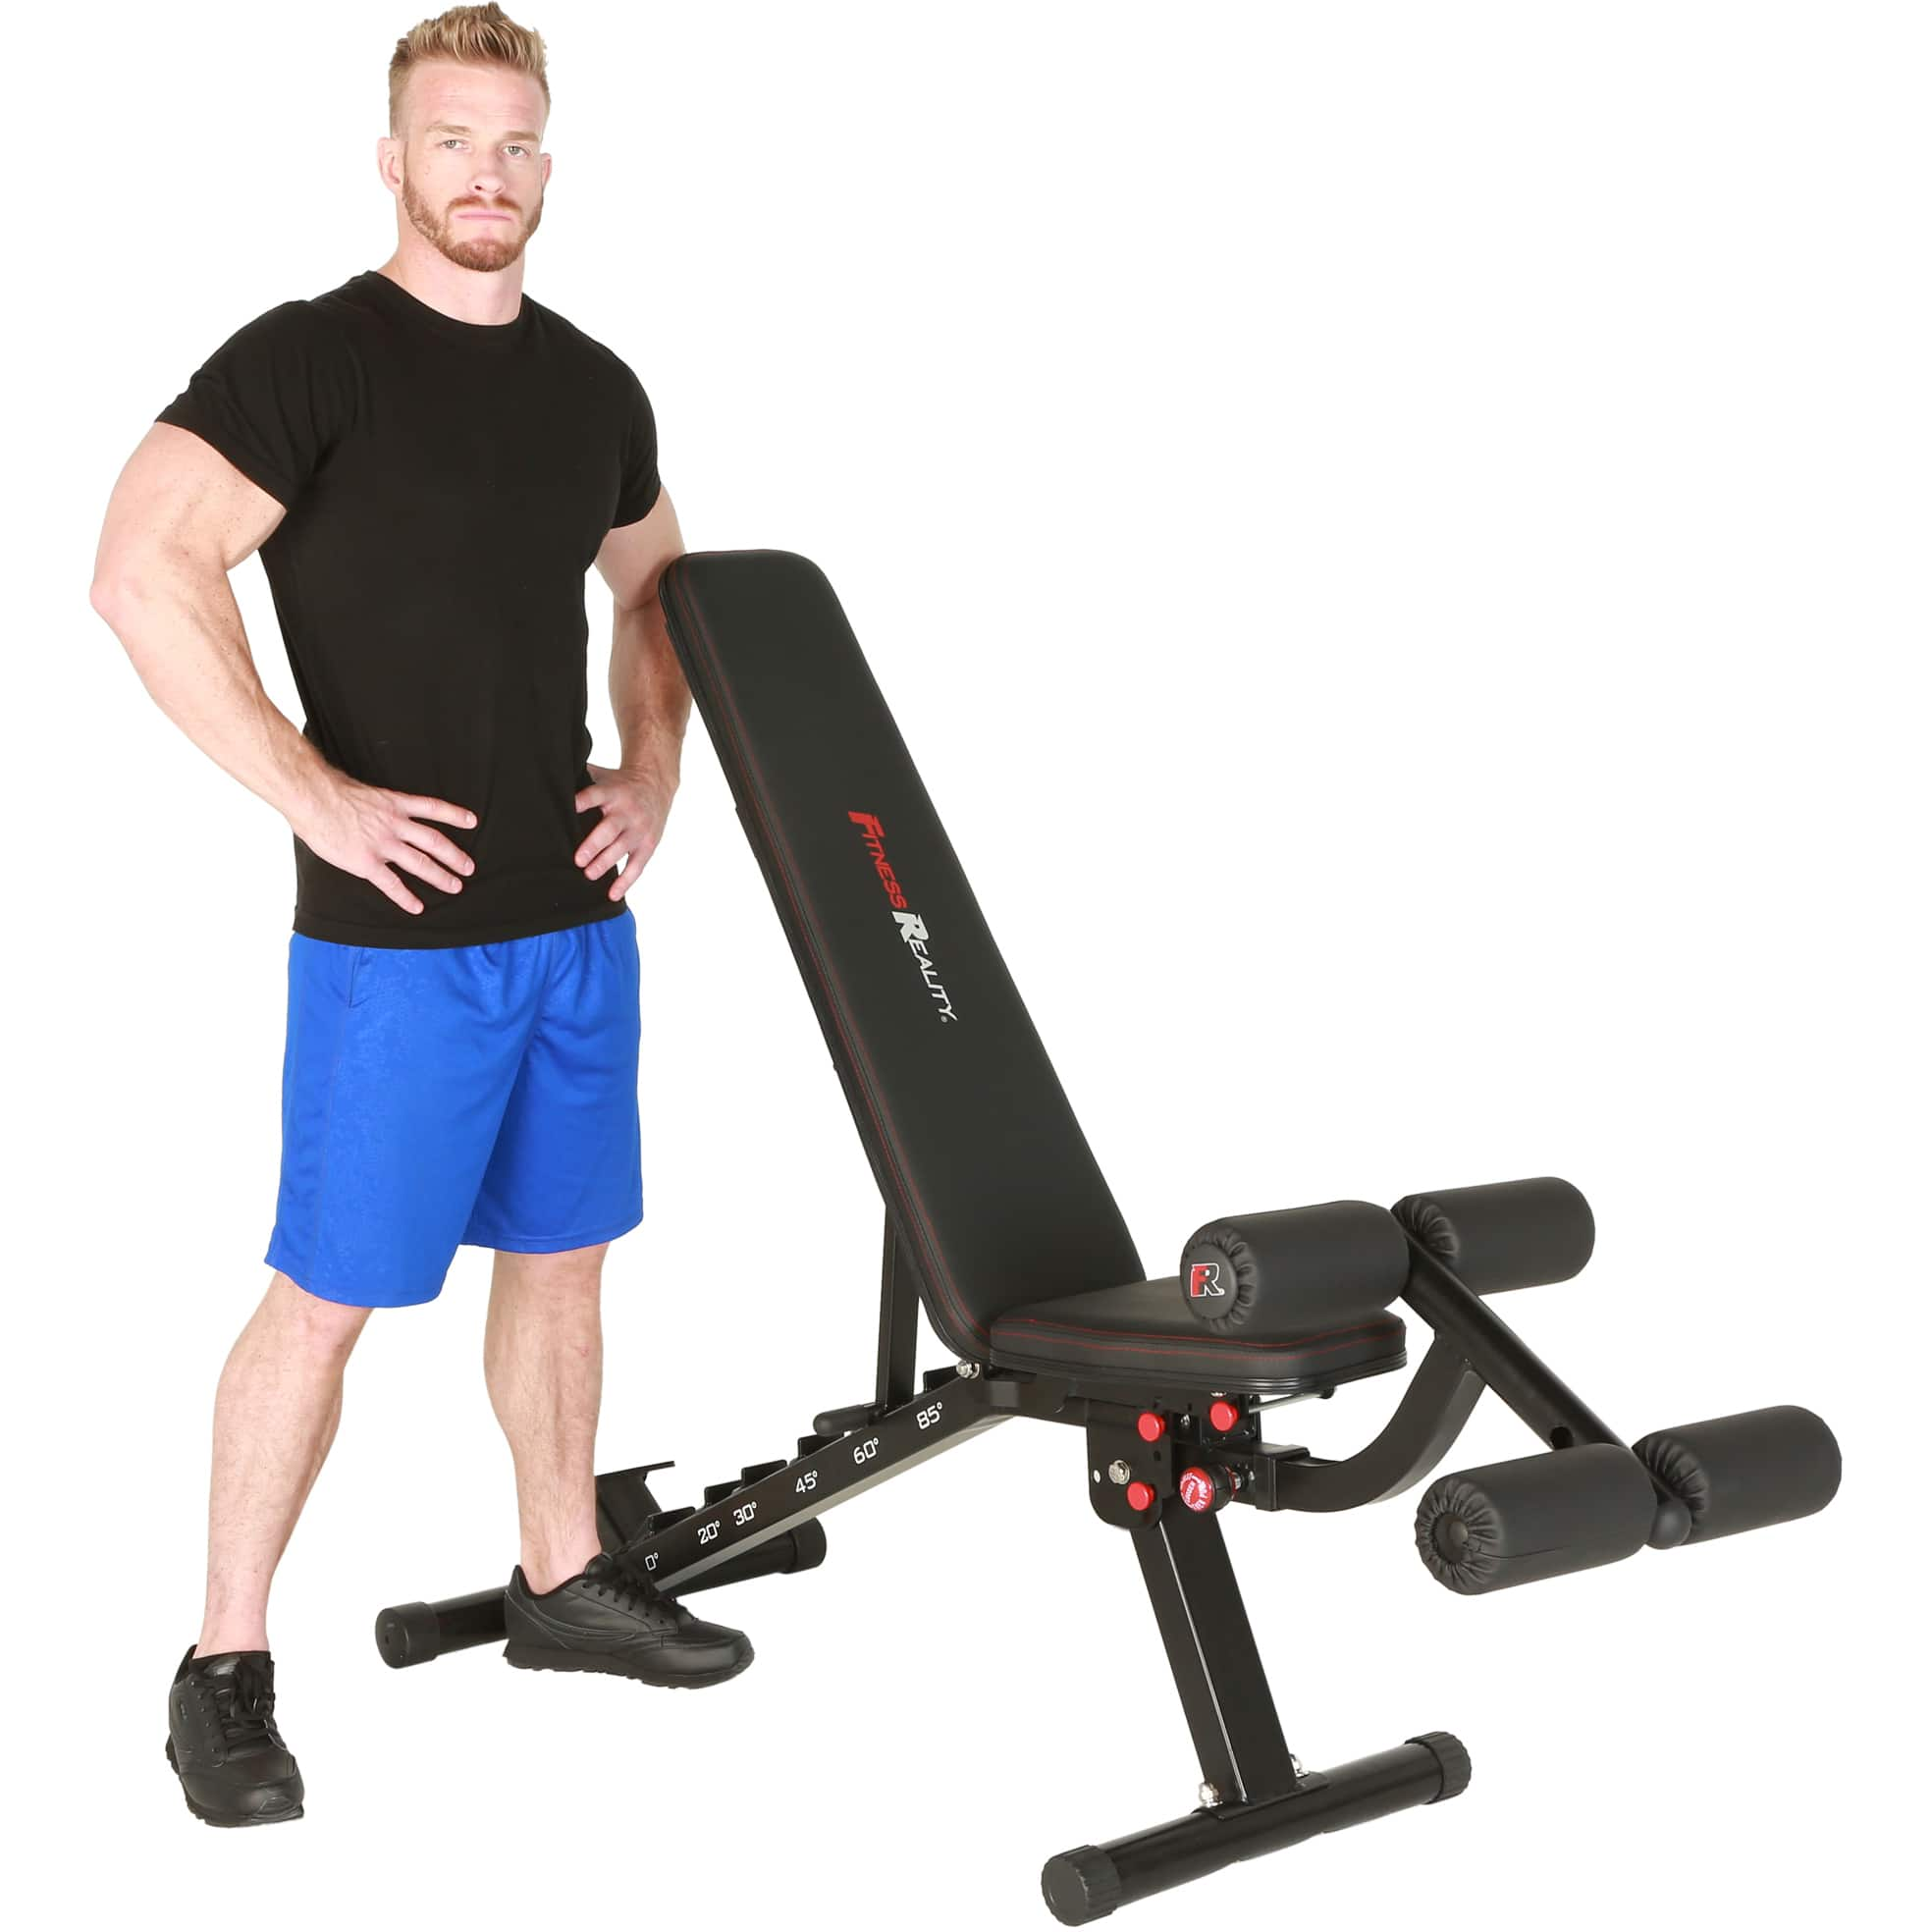 FITNESS REALITY 2000 Super Max XL Adjustable Utility FID Weight Bench with Detachable Leg Lock-Down: $159 + F/S with Slickdeals Rebate